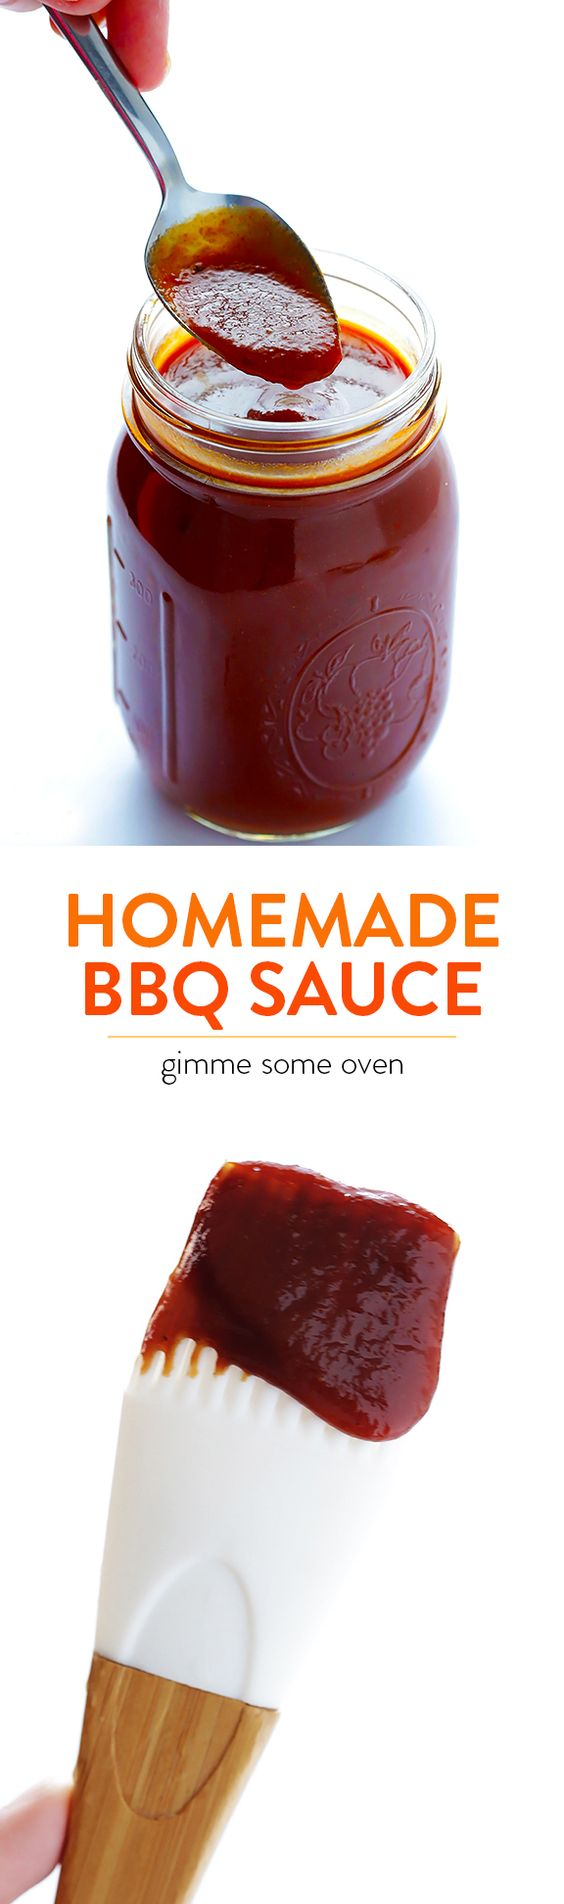 bbq sauce recipe recipe salsa and more homemade bbq bbq sauces sauces ...